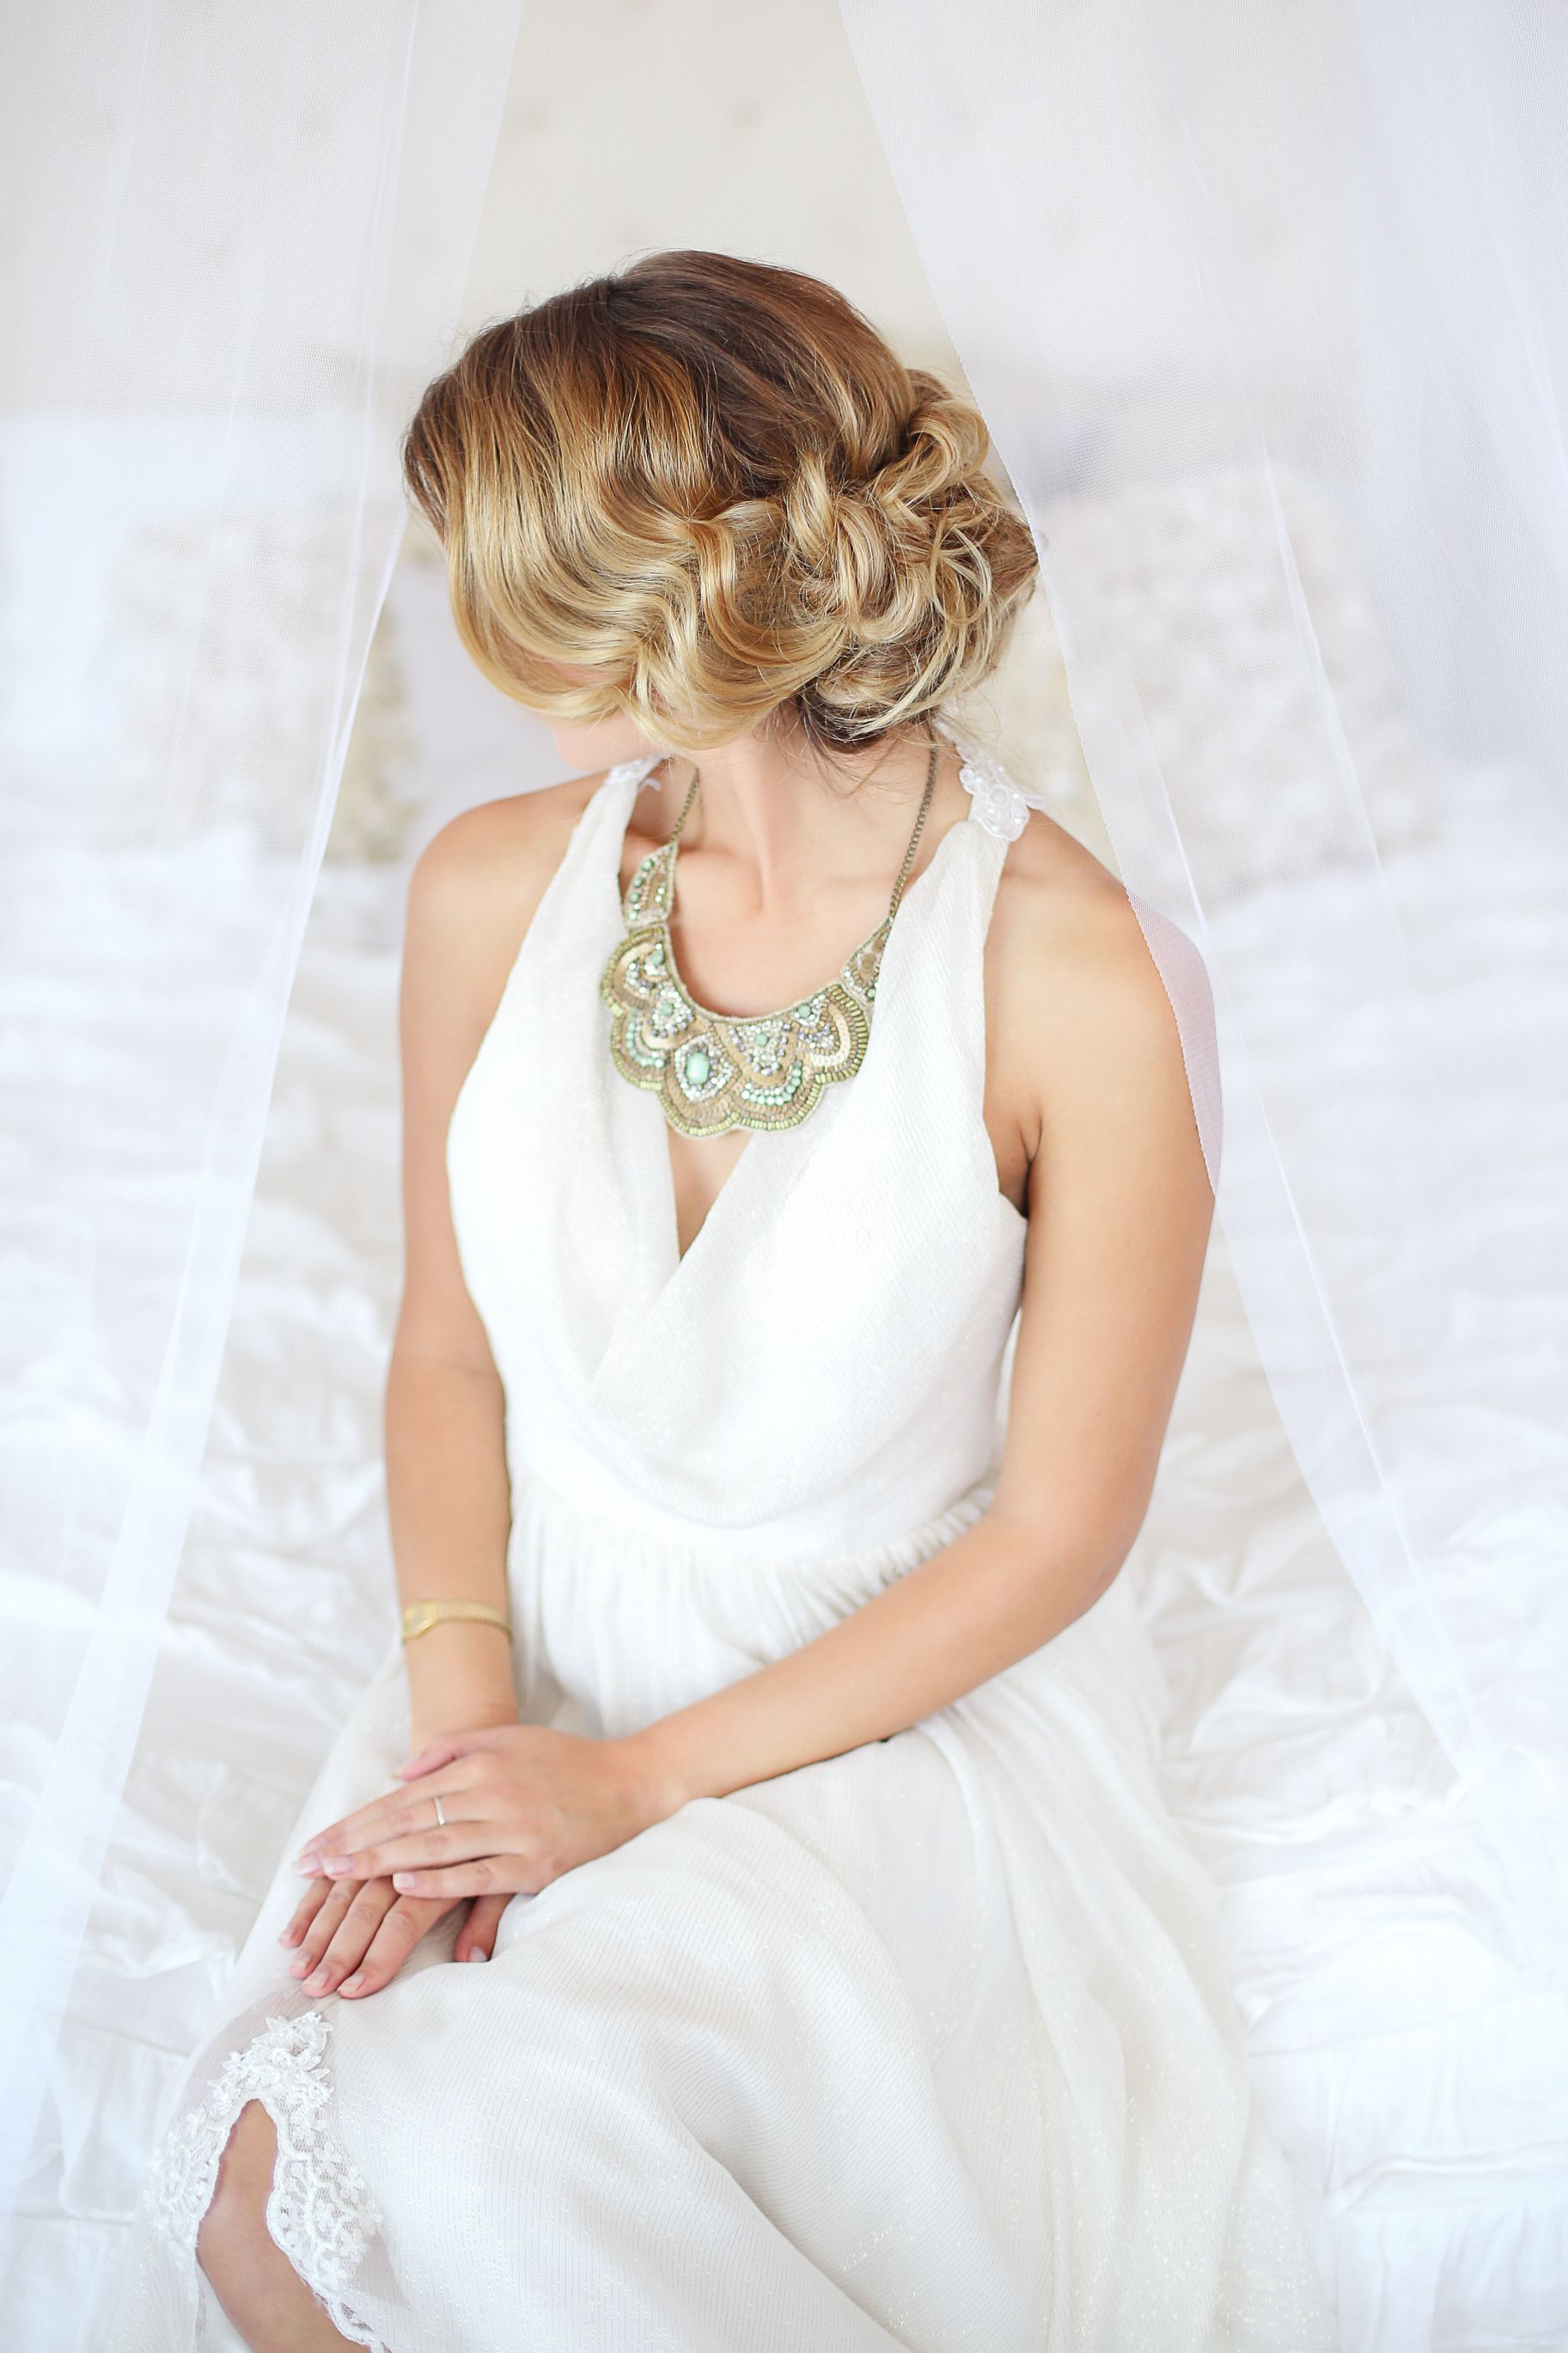 Soft Vintage Updo by The Hair and Make Up Company | Hair | Pinterest ...